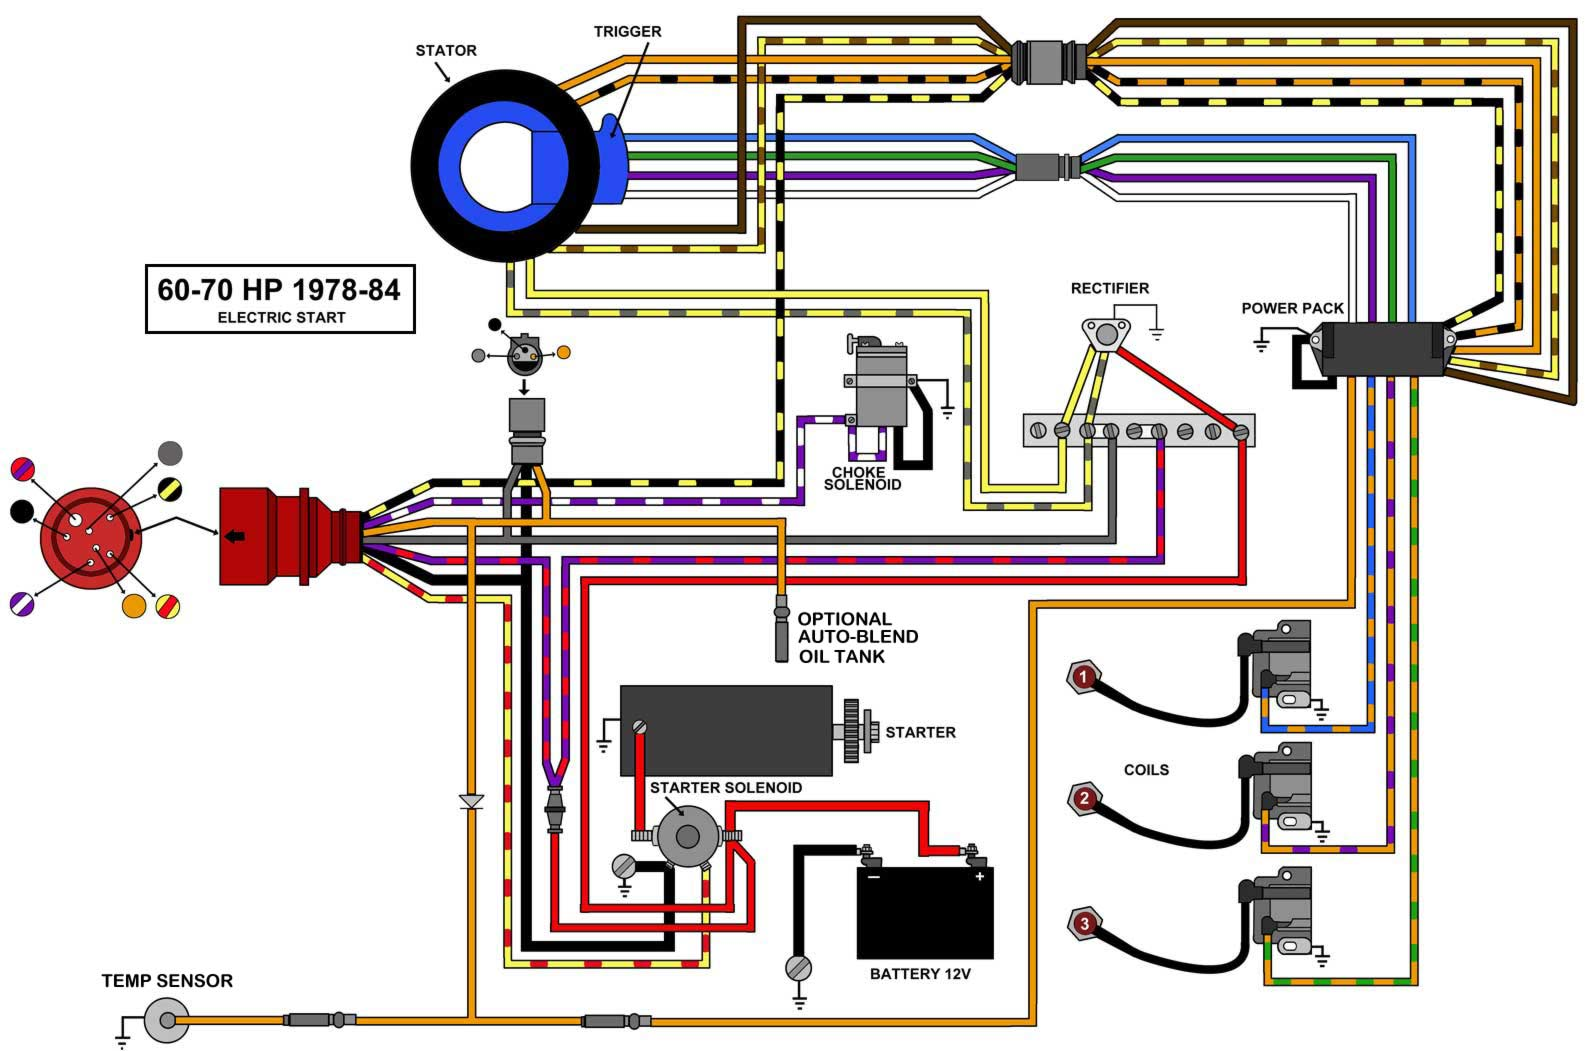 hight resolution of evinrude johnson outboard wiring diagrams mastertech marine evinrude fuel system diagram 60 hp evinrude wiring diagram